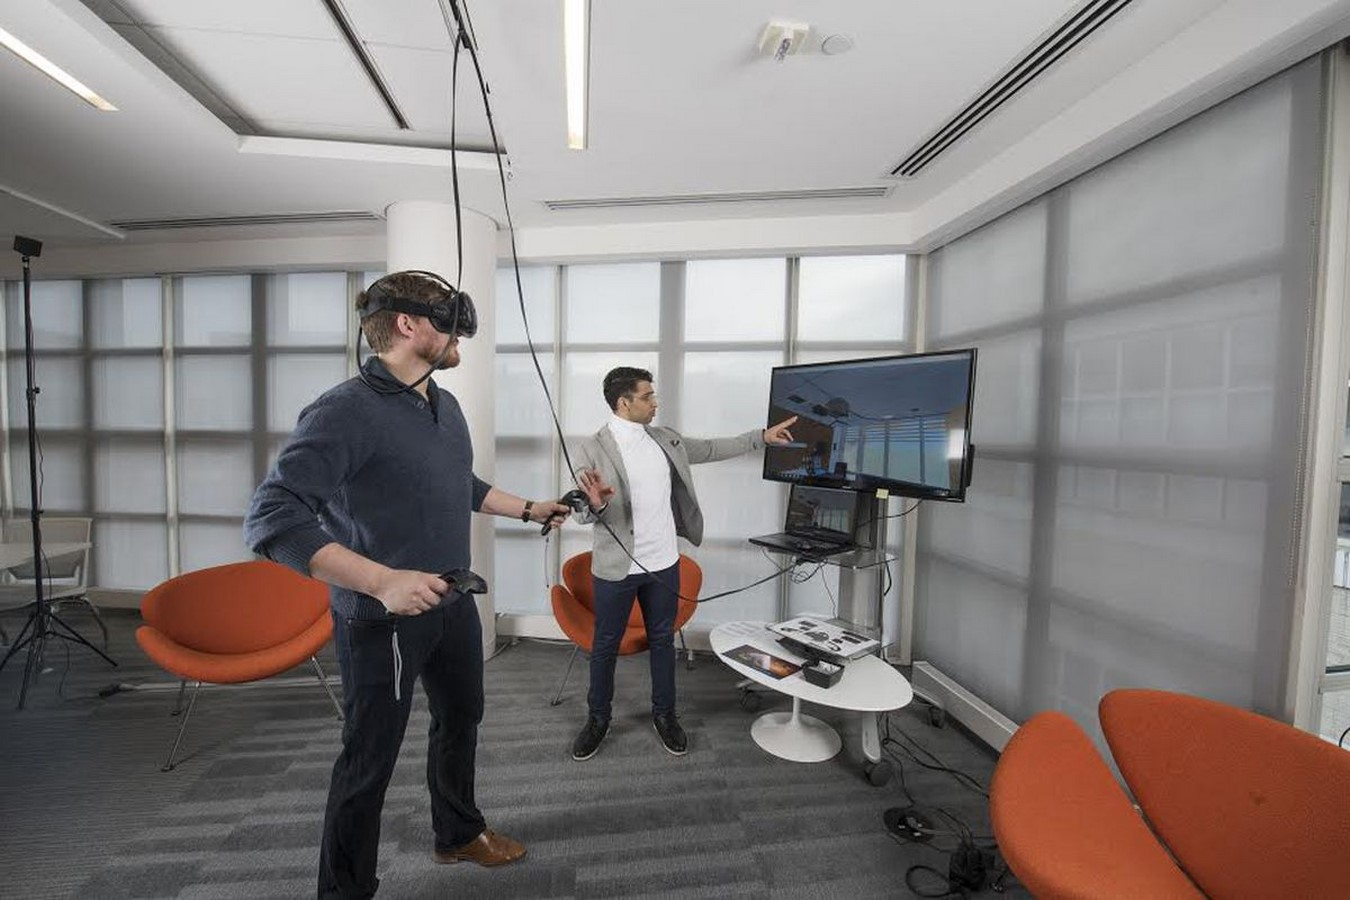 5 Upcoming instances of virtual reality in architecture- Sheet3